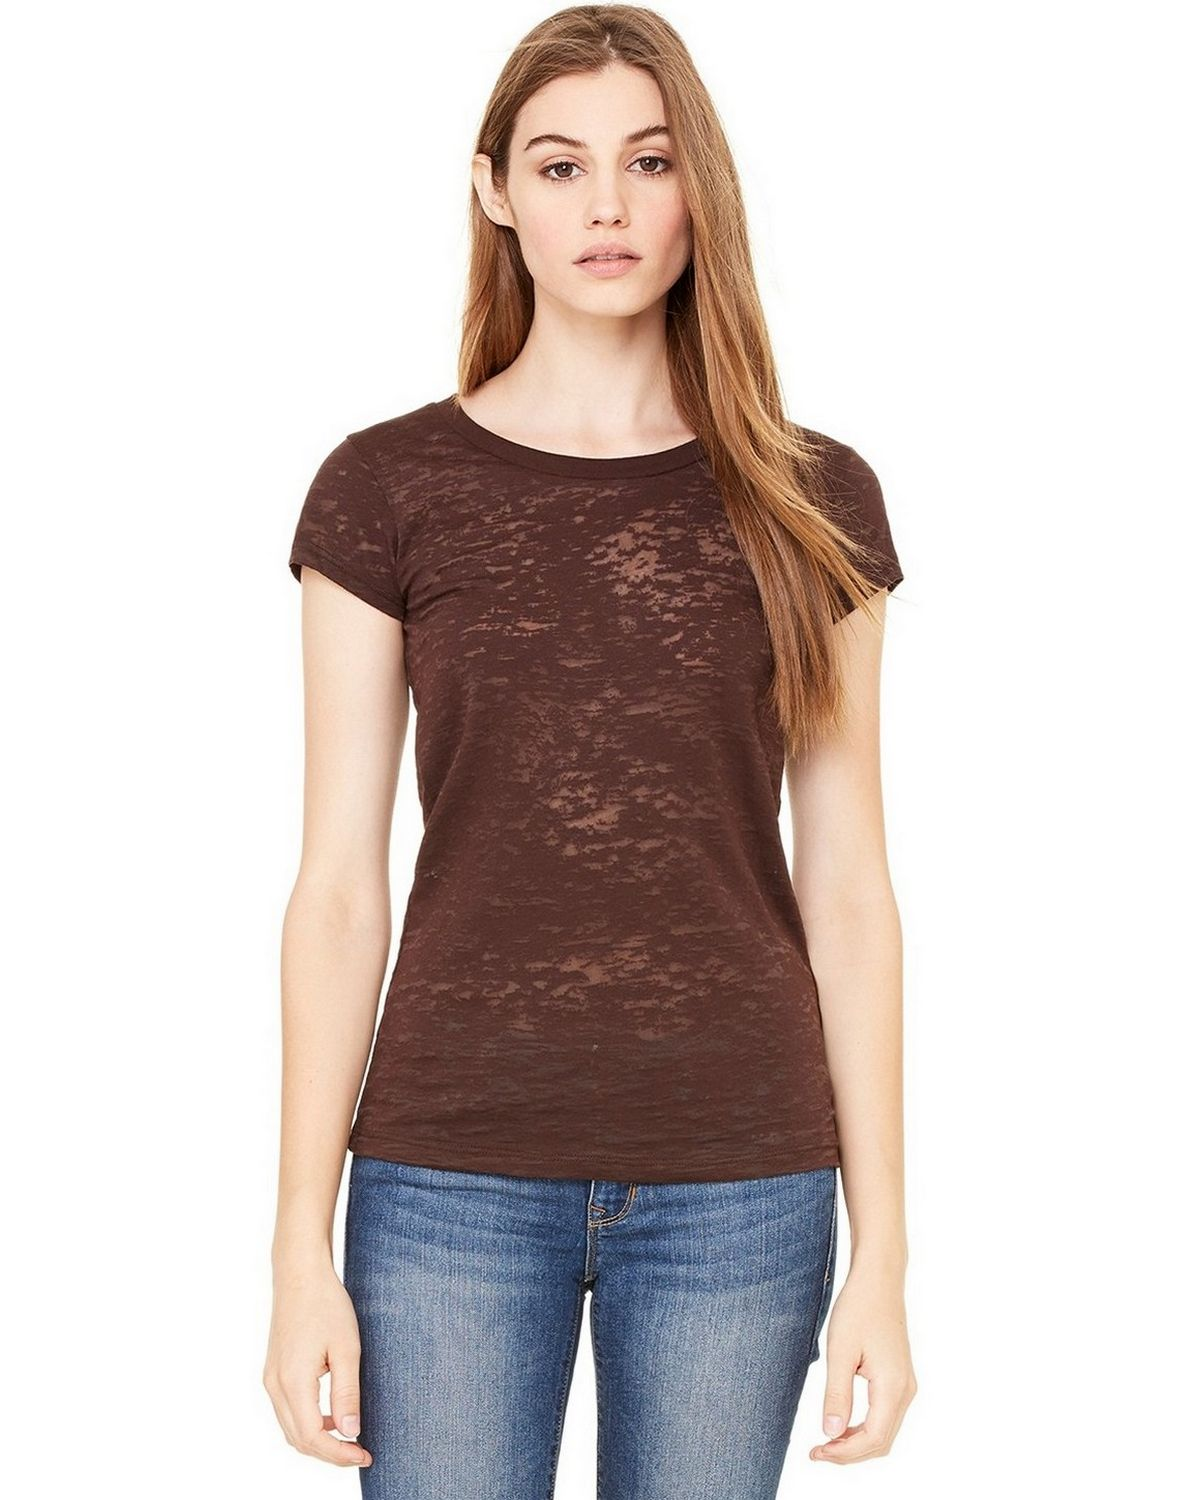 Bella + Canvas B8601 Burnout Tee - Chocolate - XL B8601